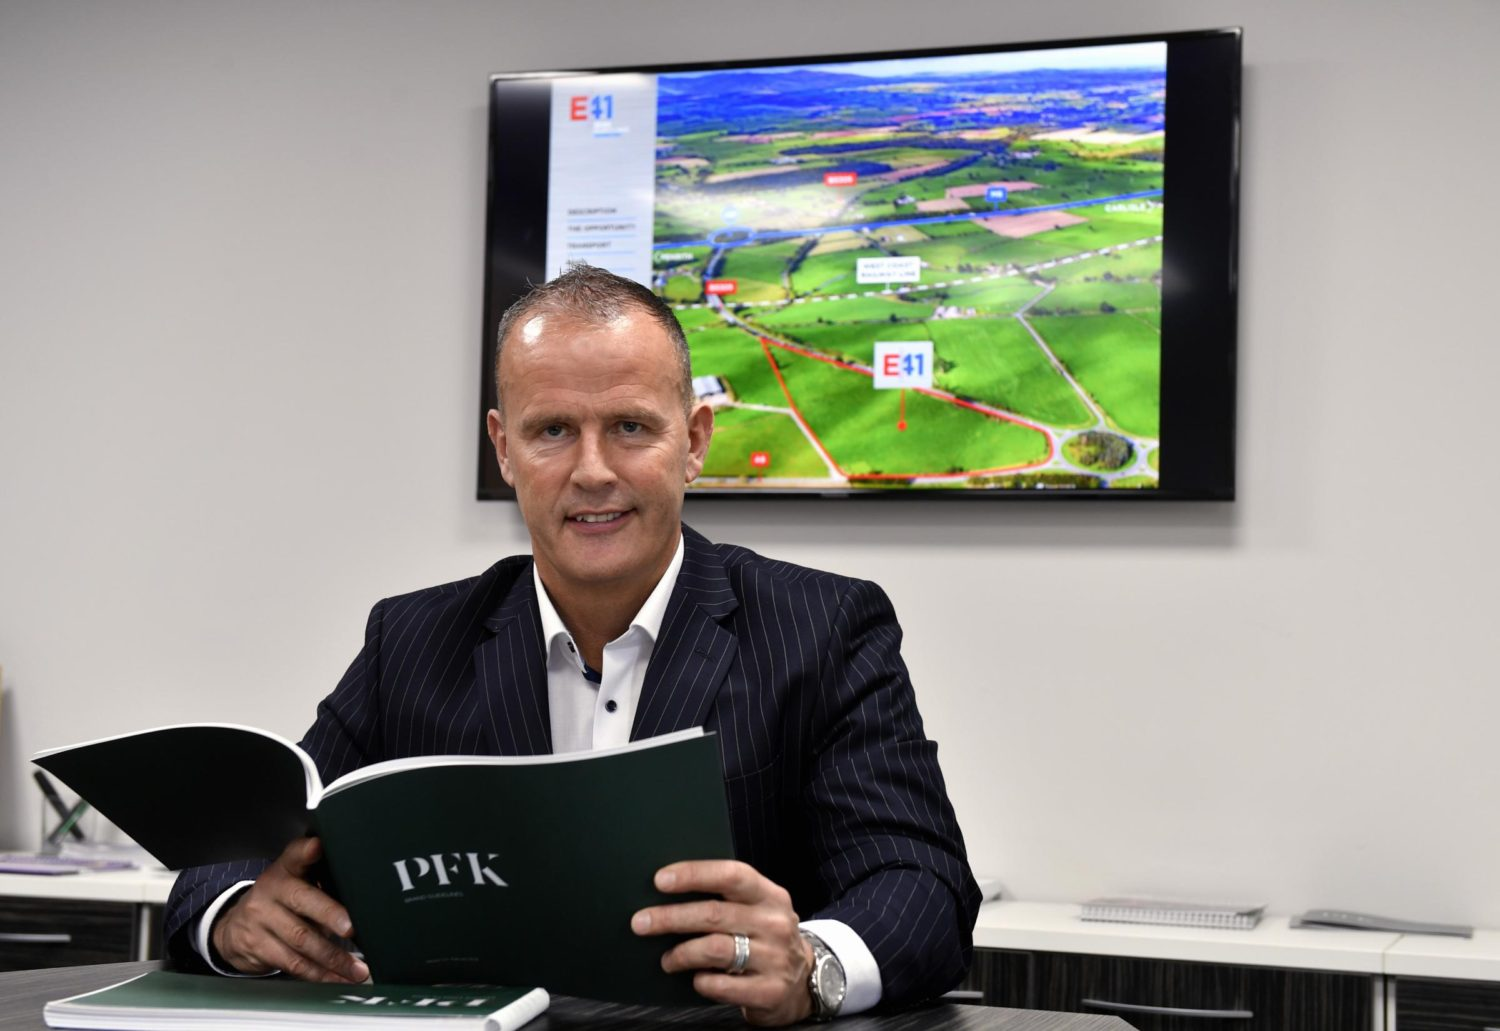 Professional services hub ambition for Eden Forty One Business Park